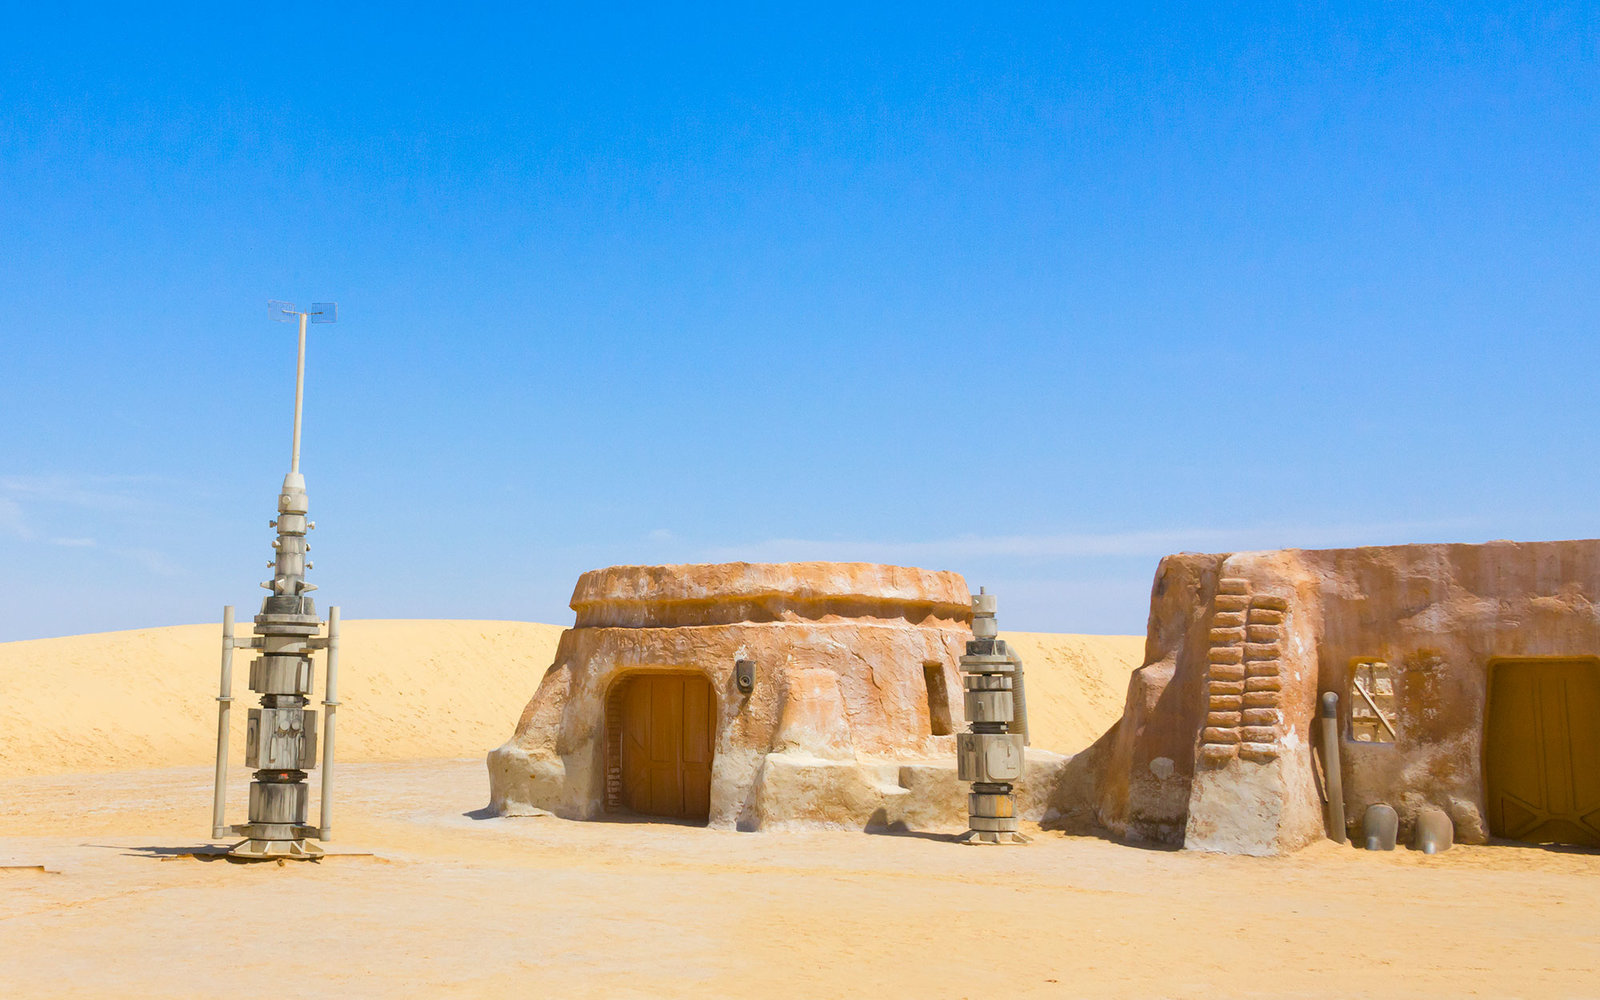 Star Wars' Tatooine in Tozeur, Tunisia